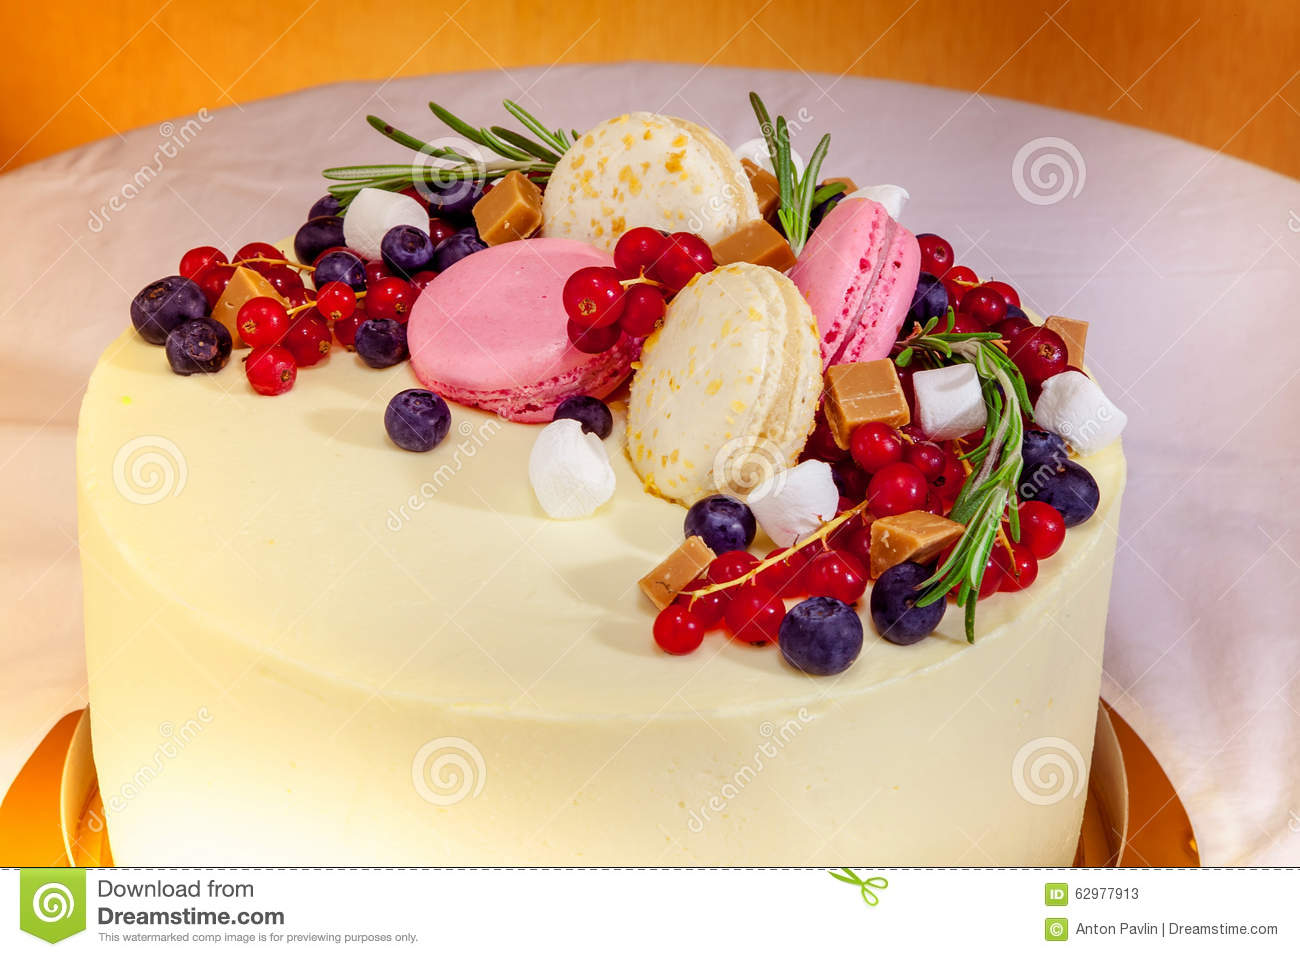 Birthday Cake With Cream Fresh Fruit And Berries Slide Stock Image